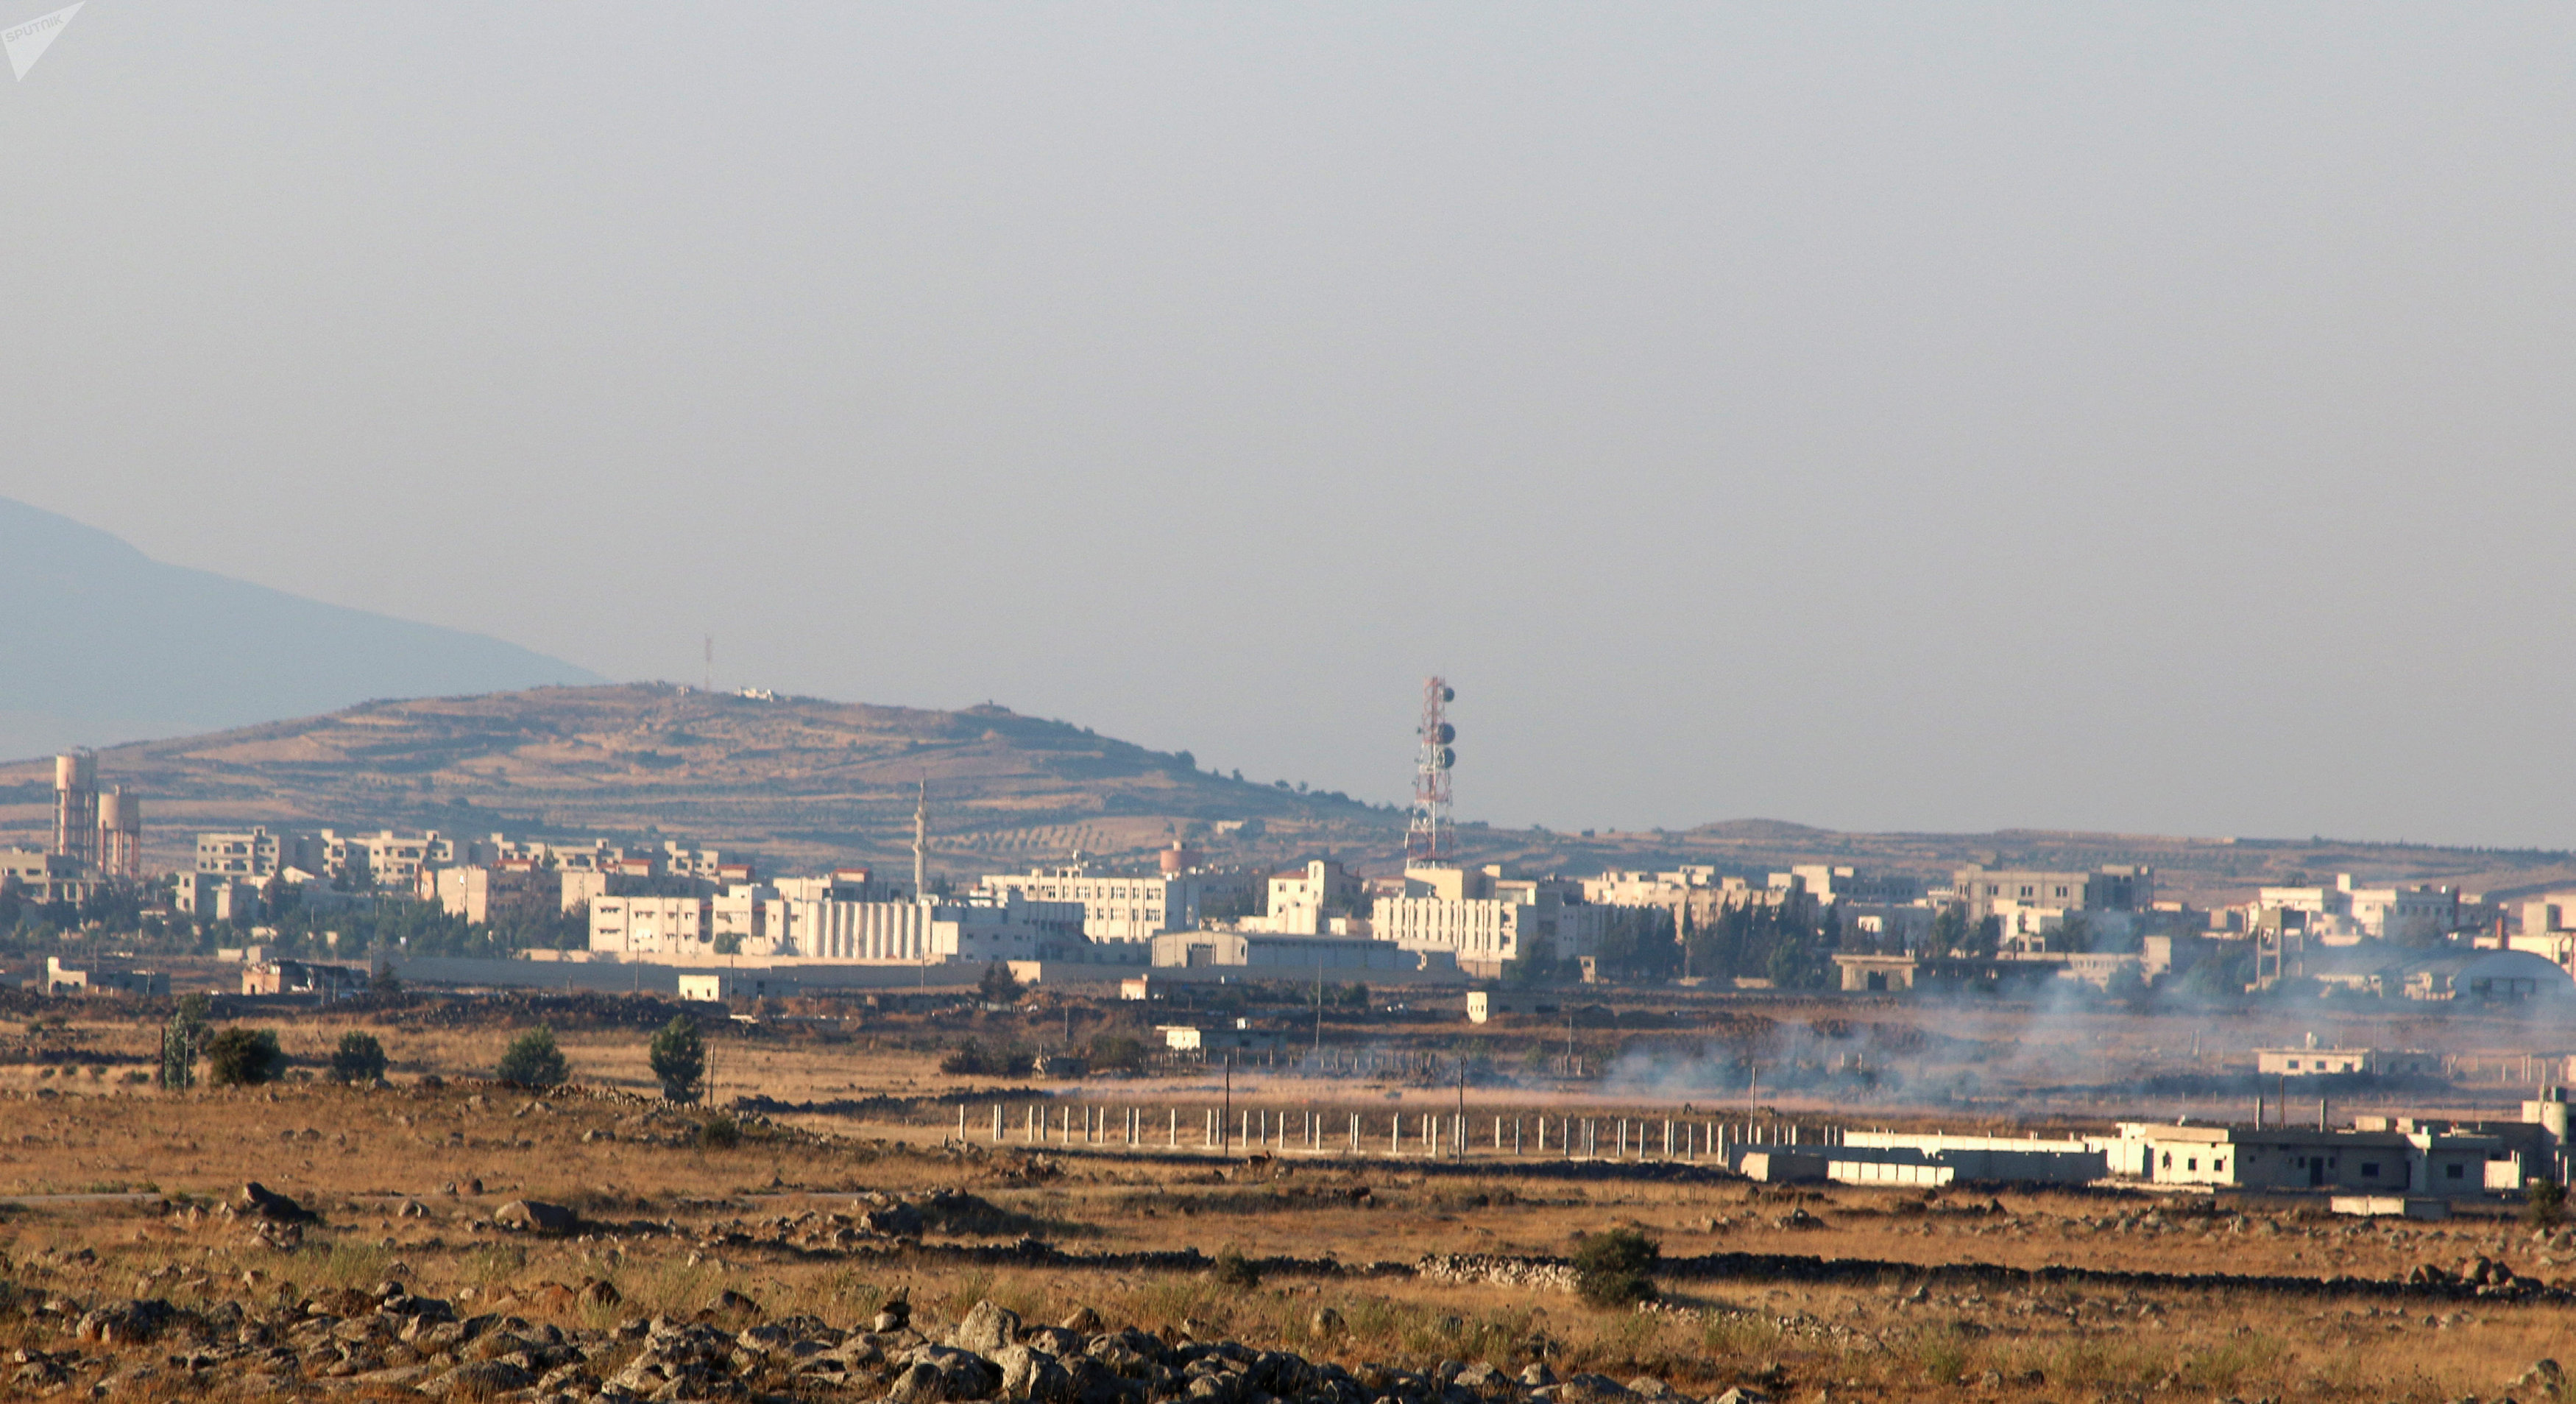 A general view shows Baath city, bordering the Israeli-occupied Golan Heights, Syria June 24, 2017